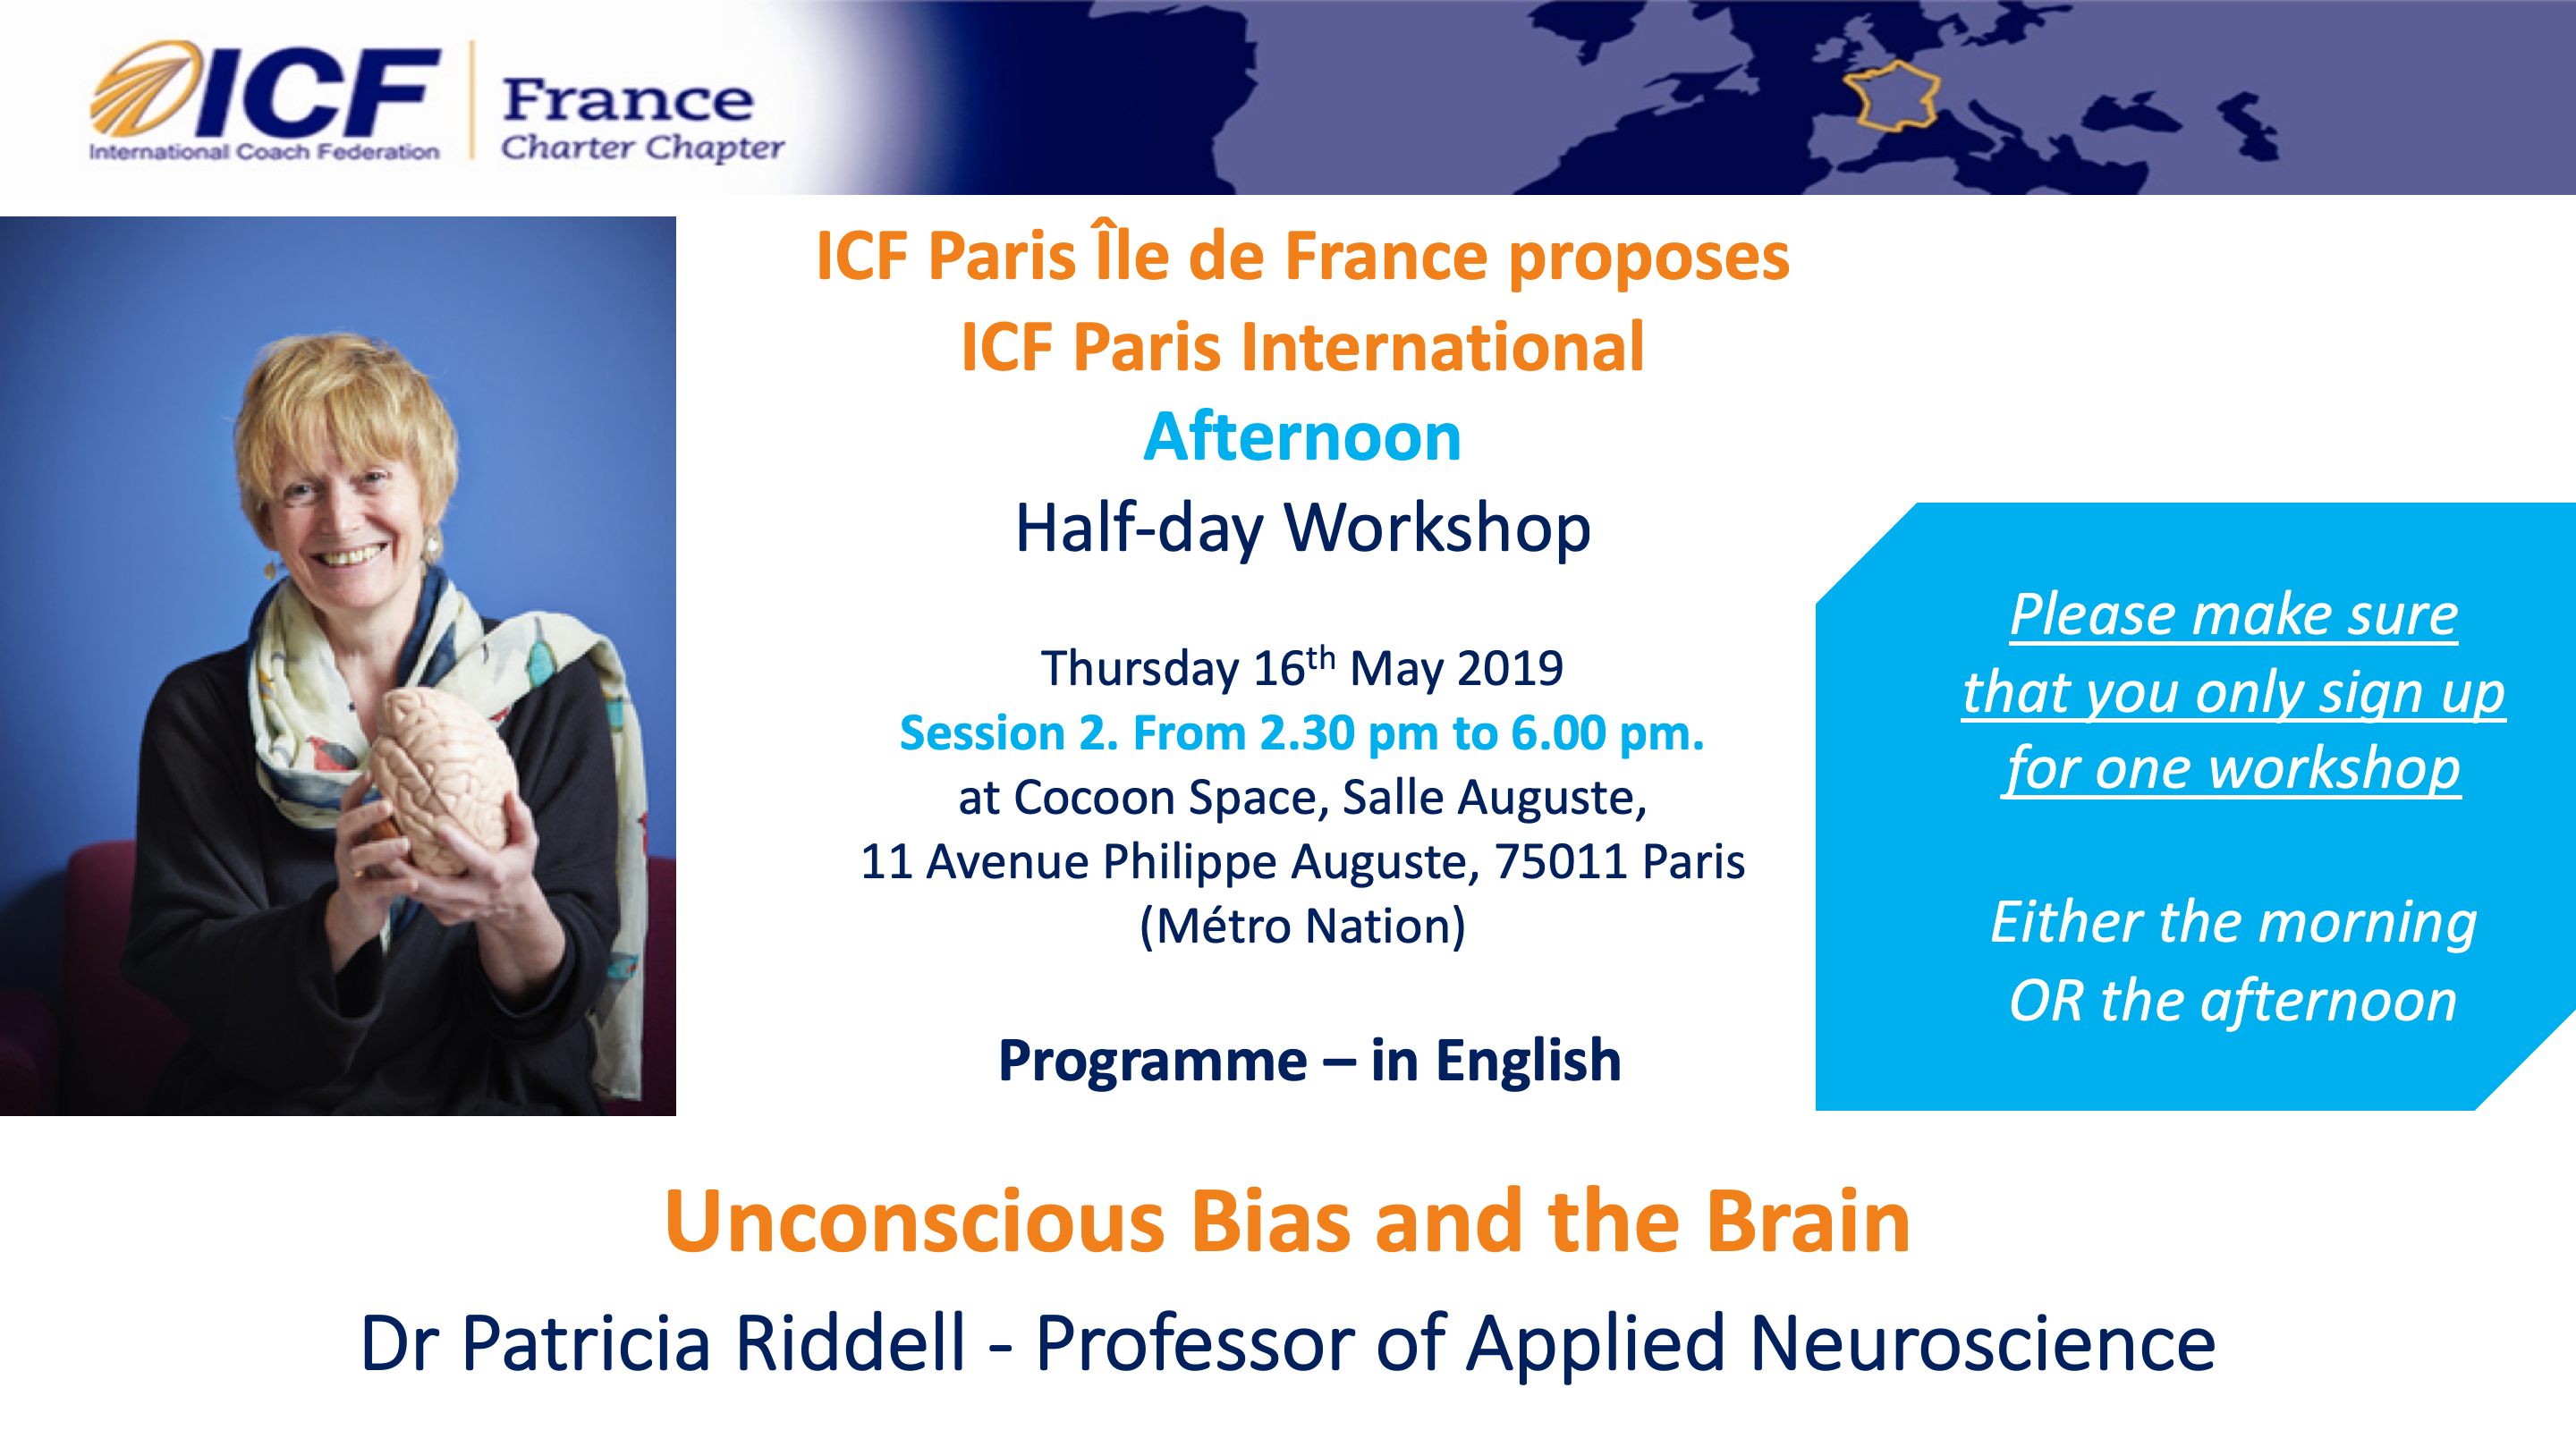 057d277c8a17  Paris 11  Unconscious Bias and the Brain - Patricia Riddell Thursday 16th  May 2019 Afternoon